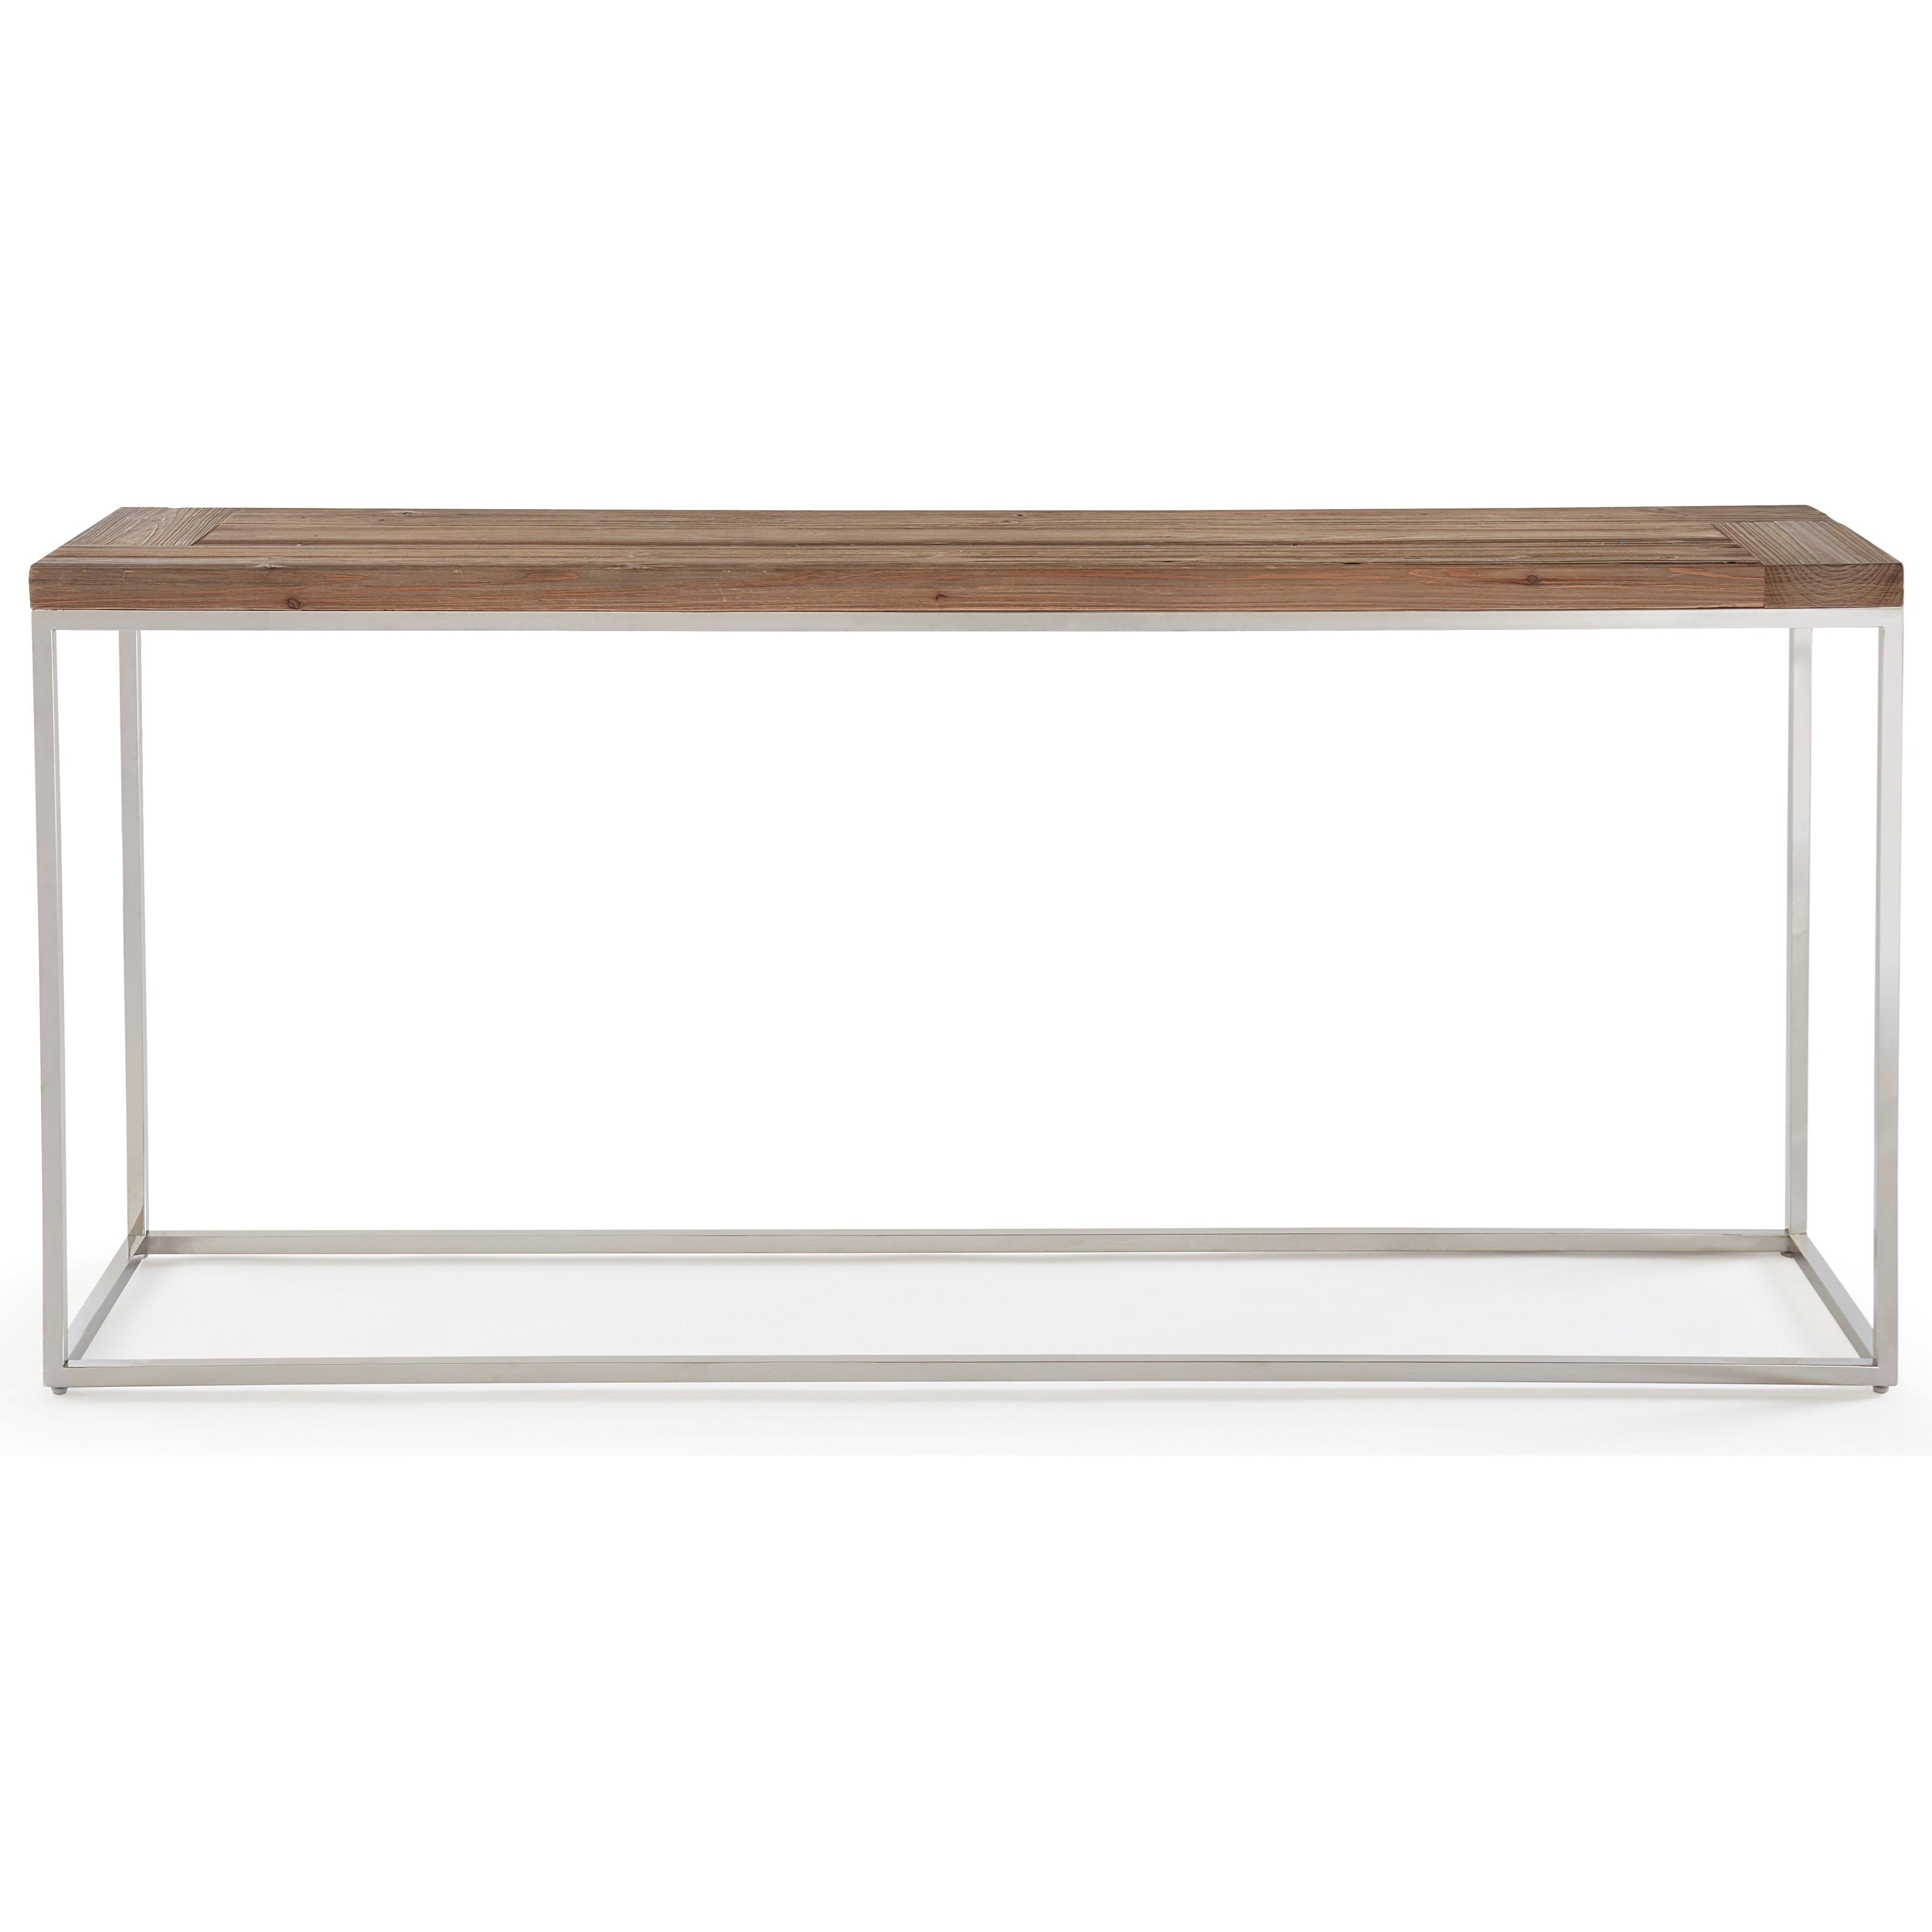 Ace Console Table by Modus International at A1 Furniture & Mattress